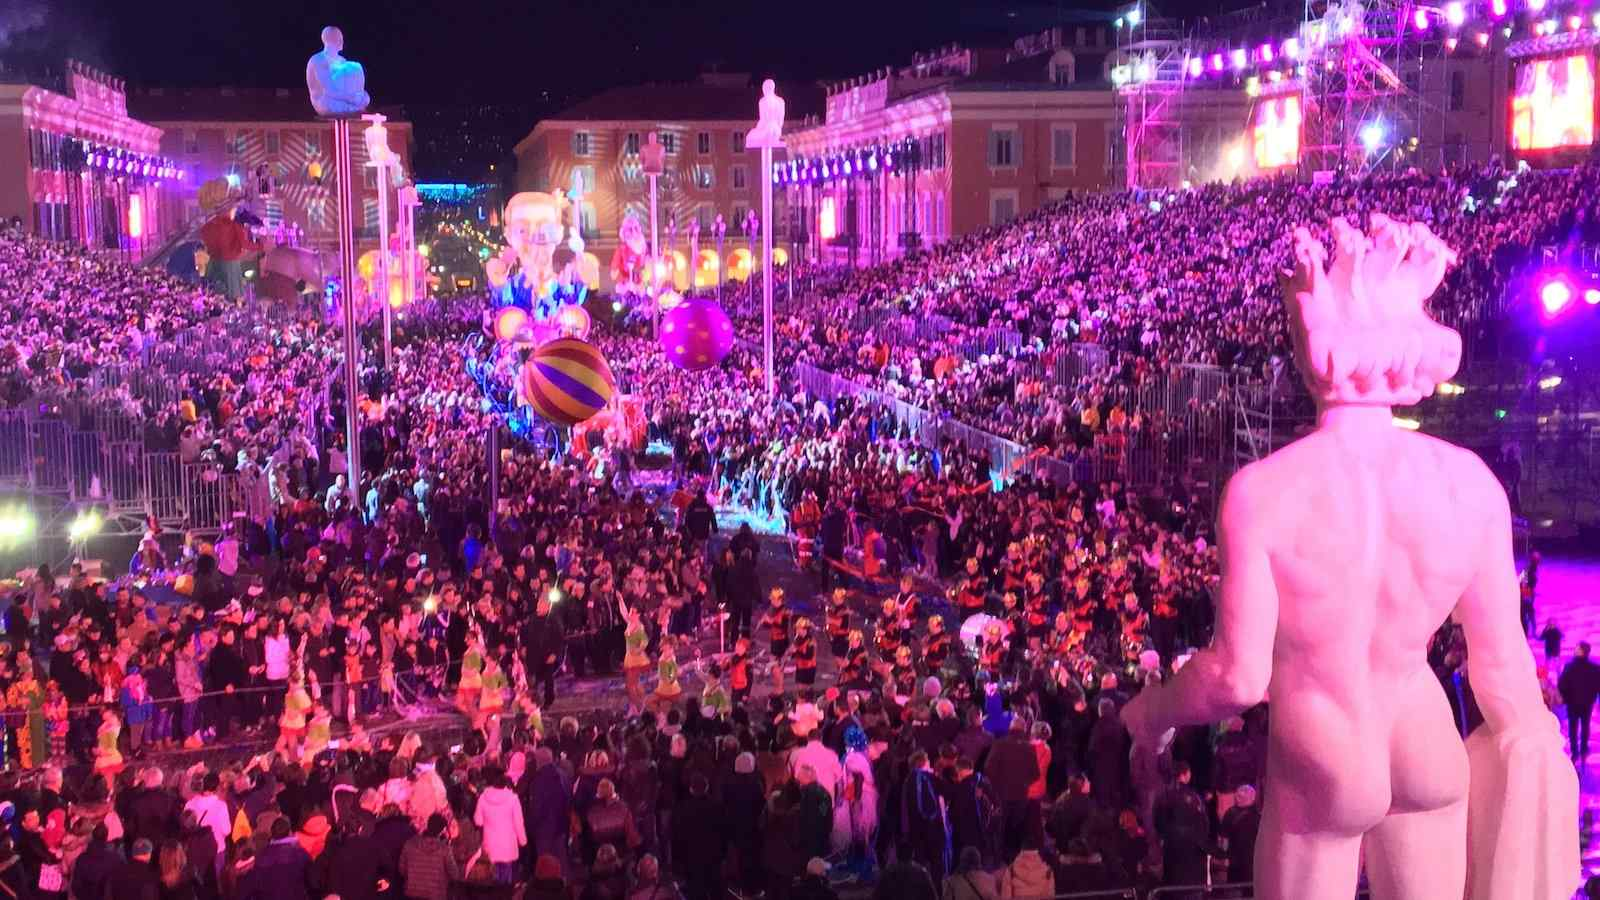 The Old Town of the city of Nice has lots of excellent gay bars and clubs